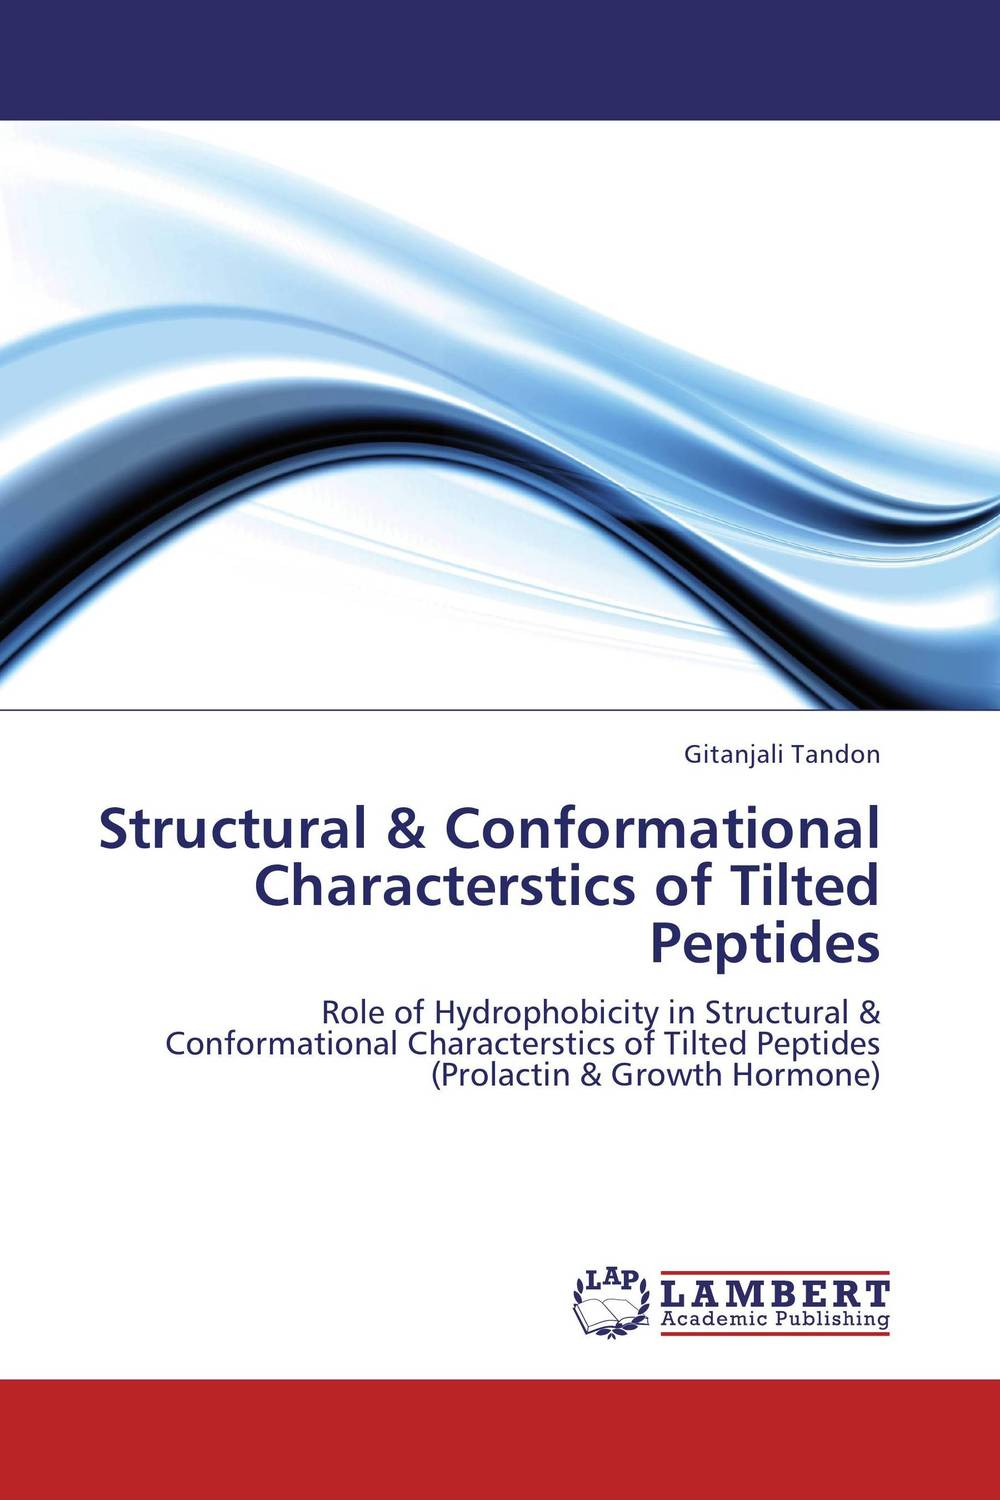 Structural & Conformational Characterstics of Tilted Peptides the destruction of tilted arc – documents